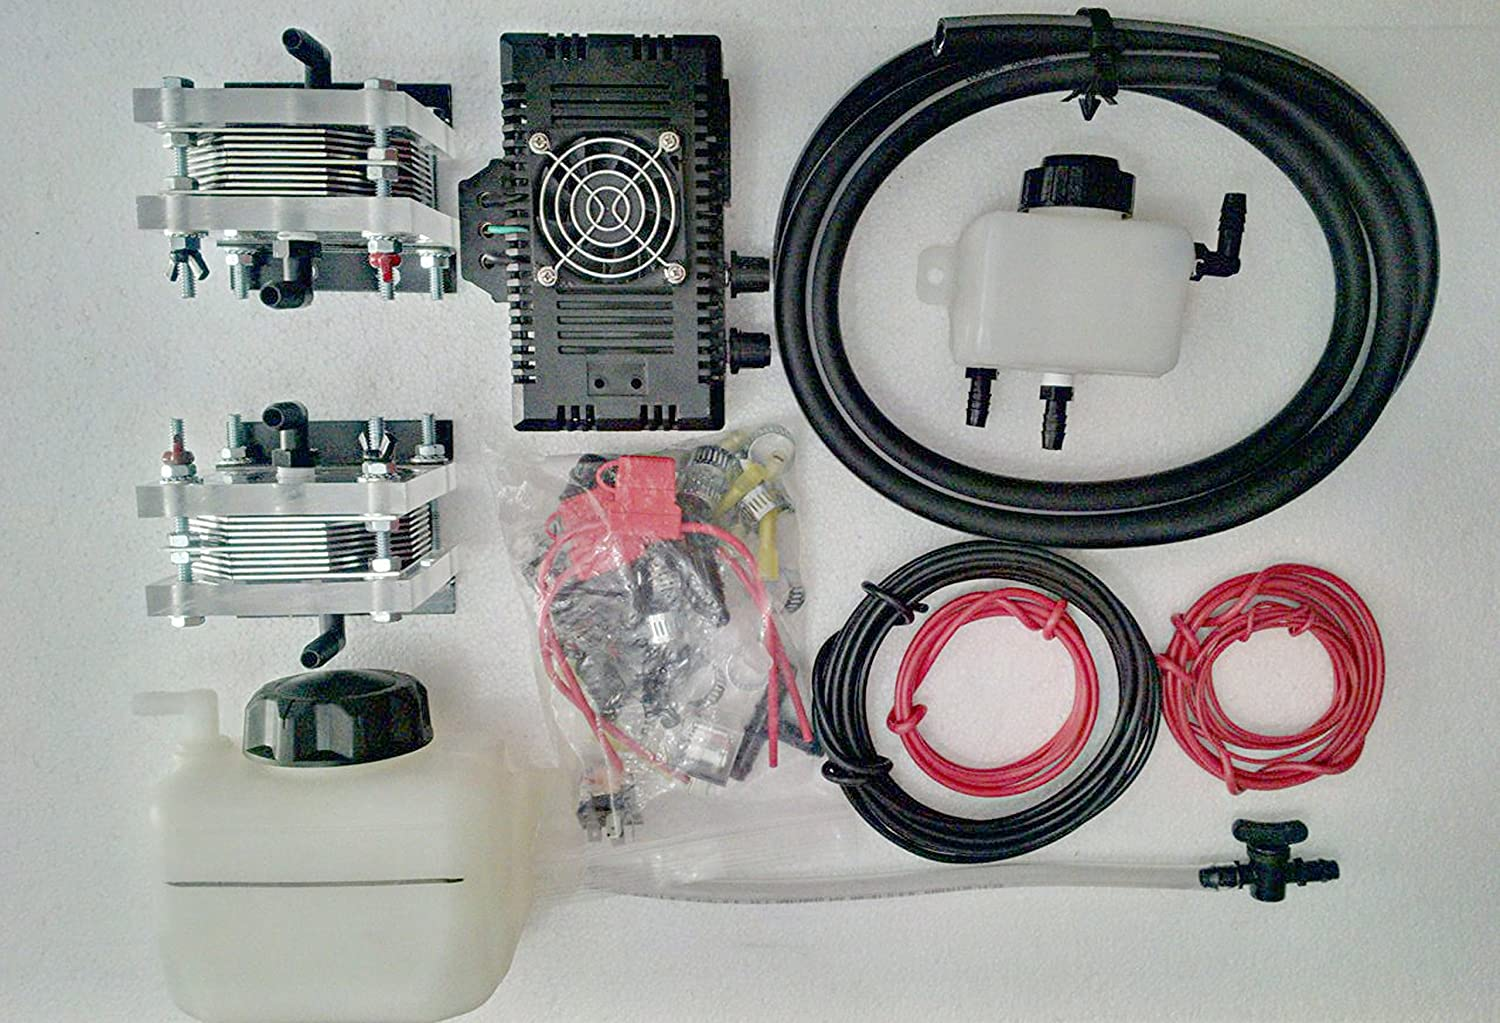 hho dry cell kit for diesel cars 1000cc to 3000cc available at amazon for. Black Bedroom Furniture Sets. Home Design Ideas